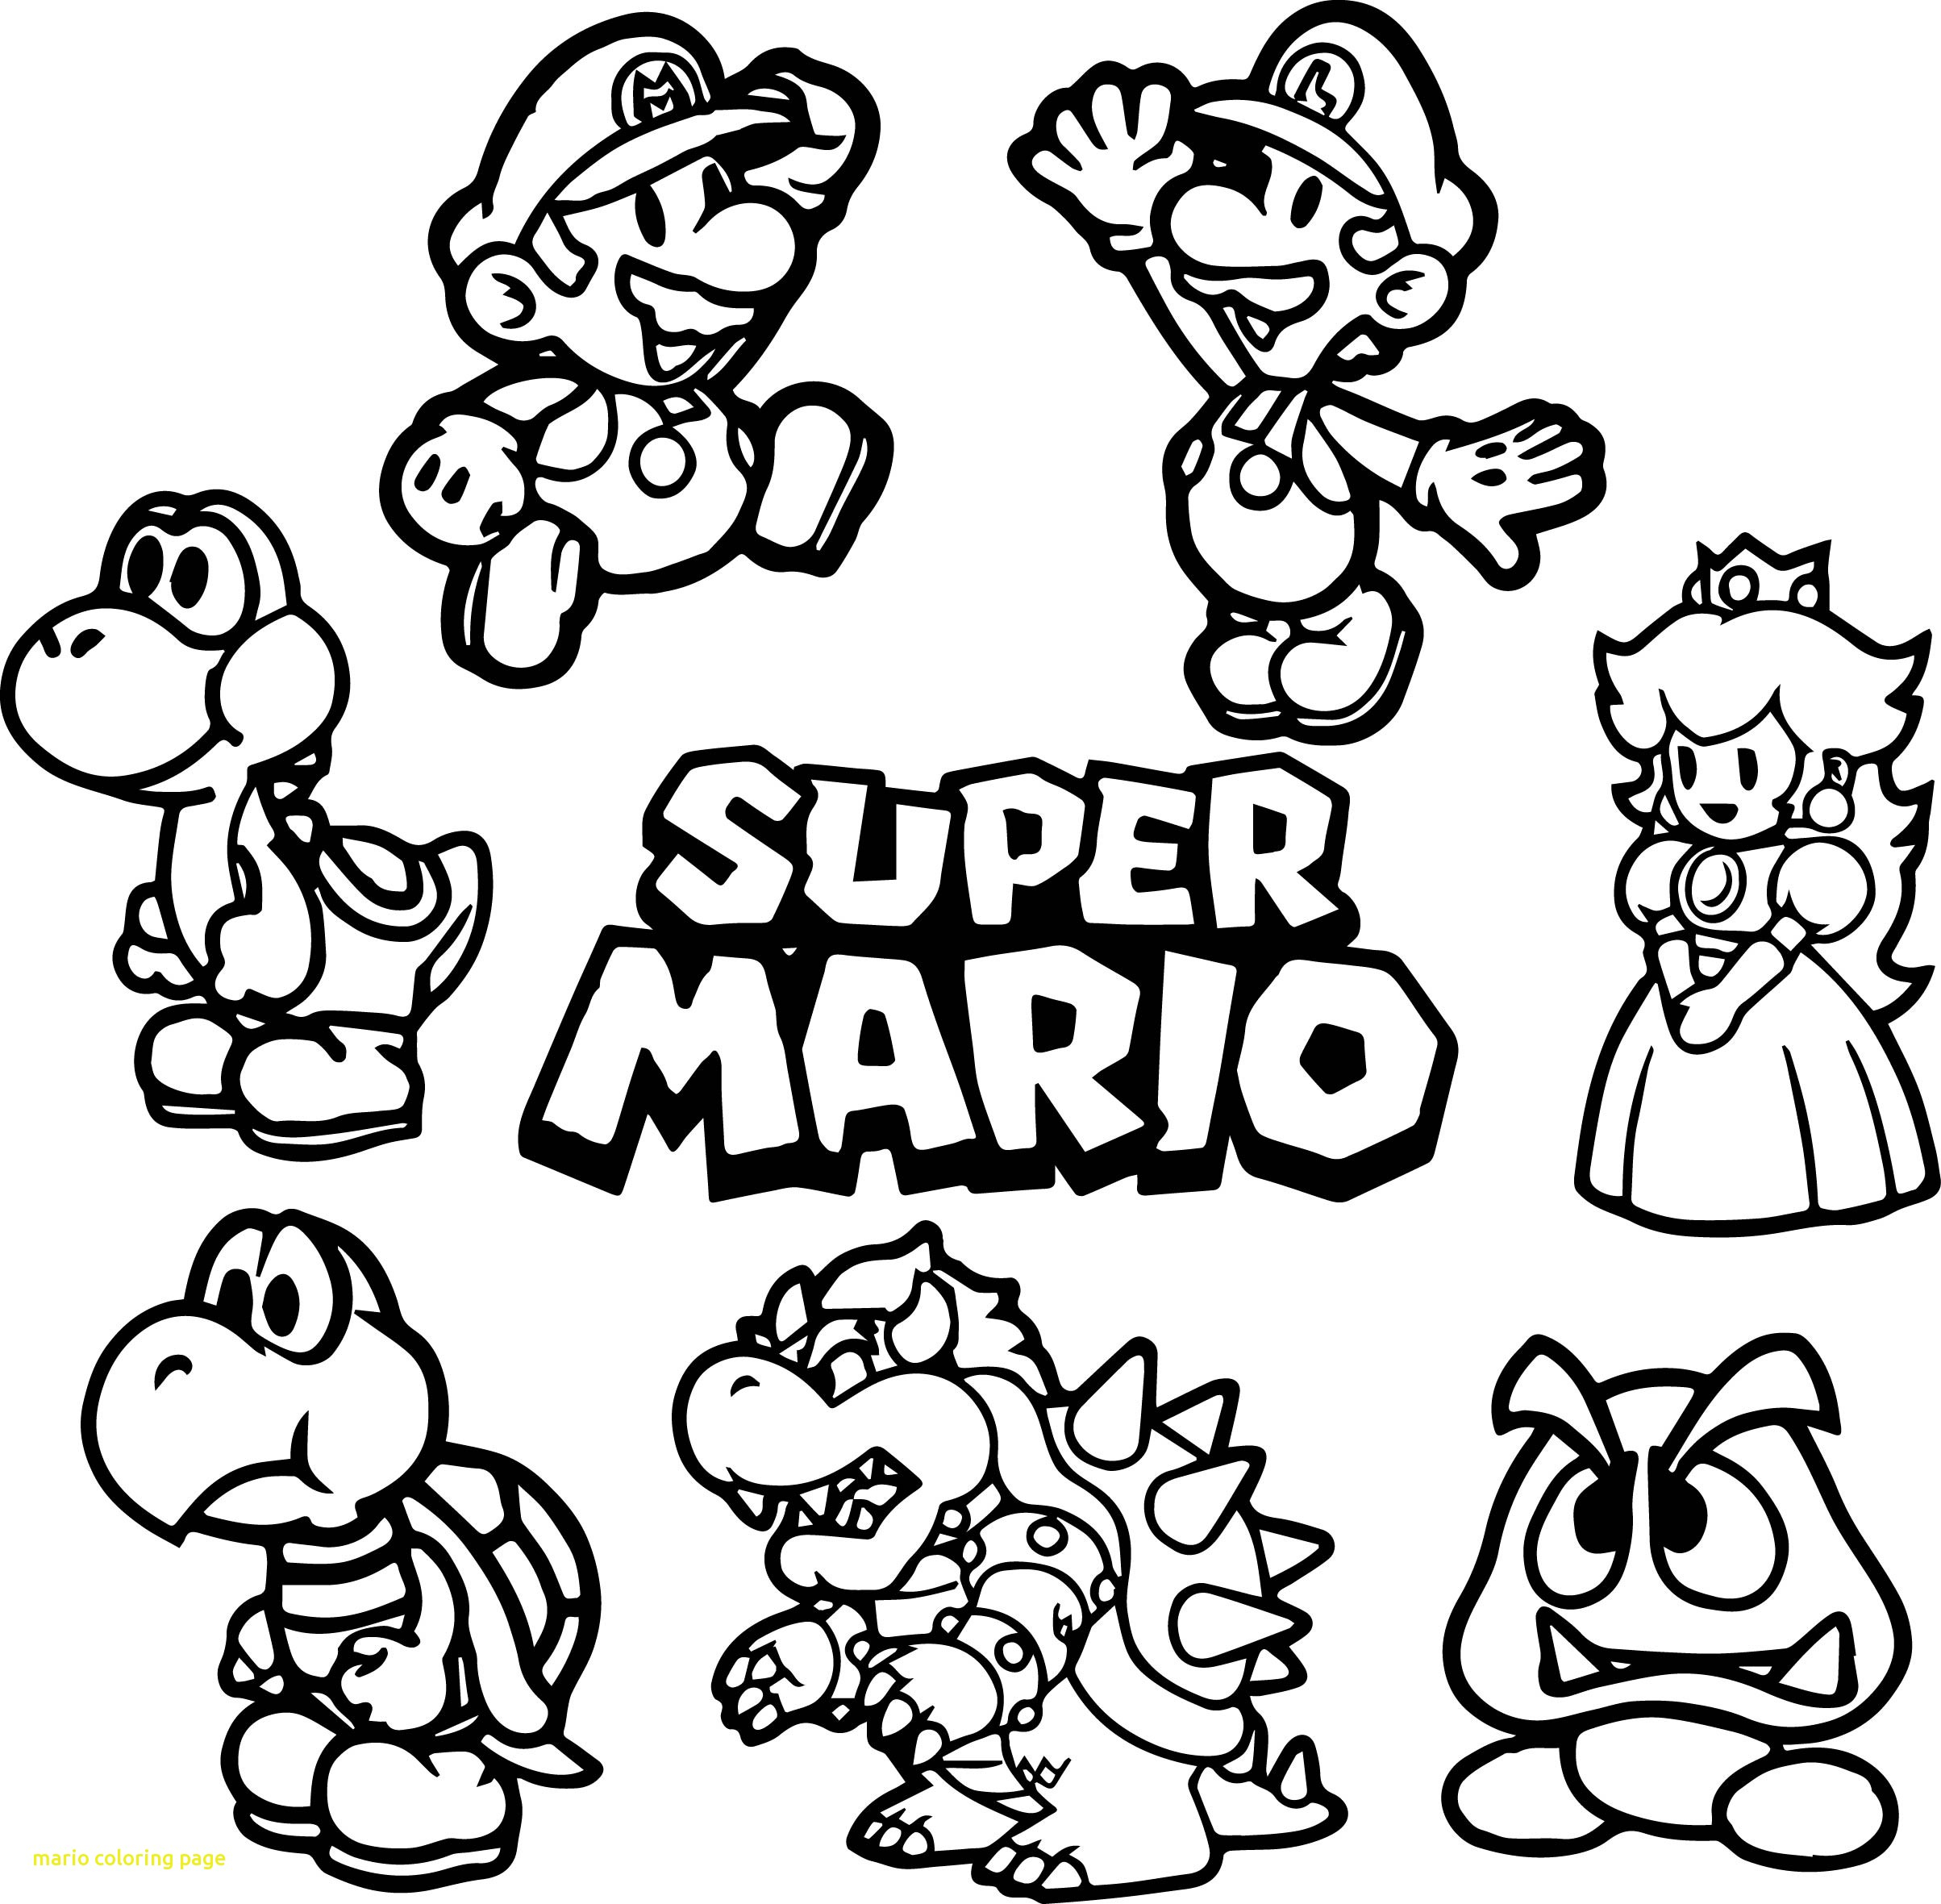 Super Mario Coloring Pages Collection Of Super Mario Coloring Pages Bonnieleepanda Gallery